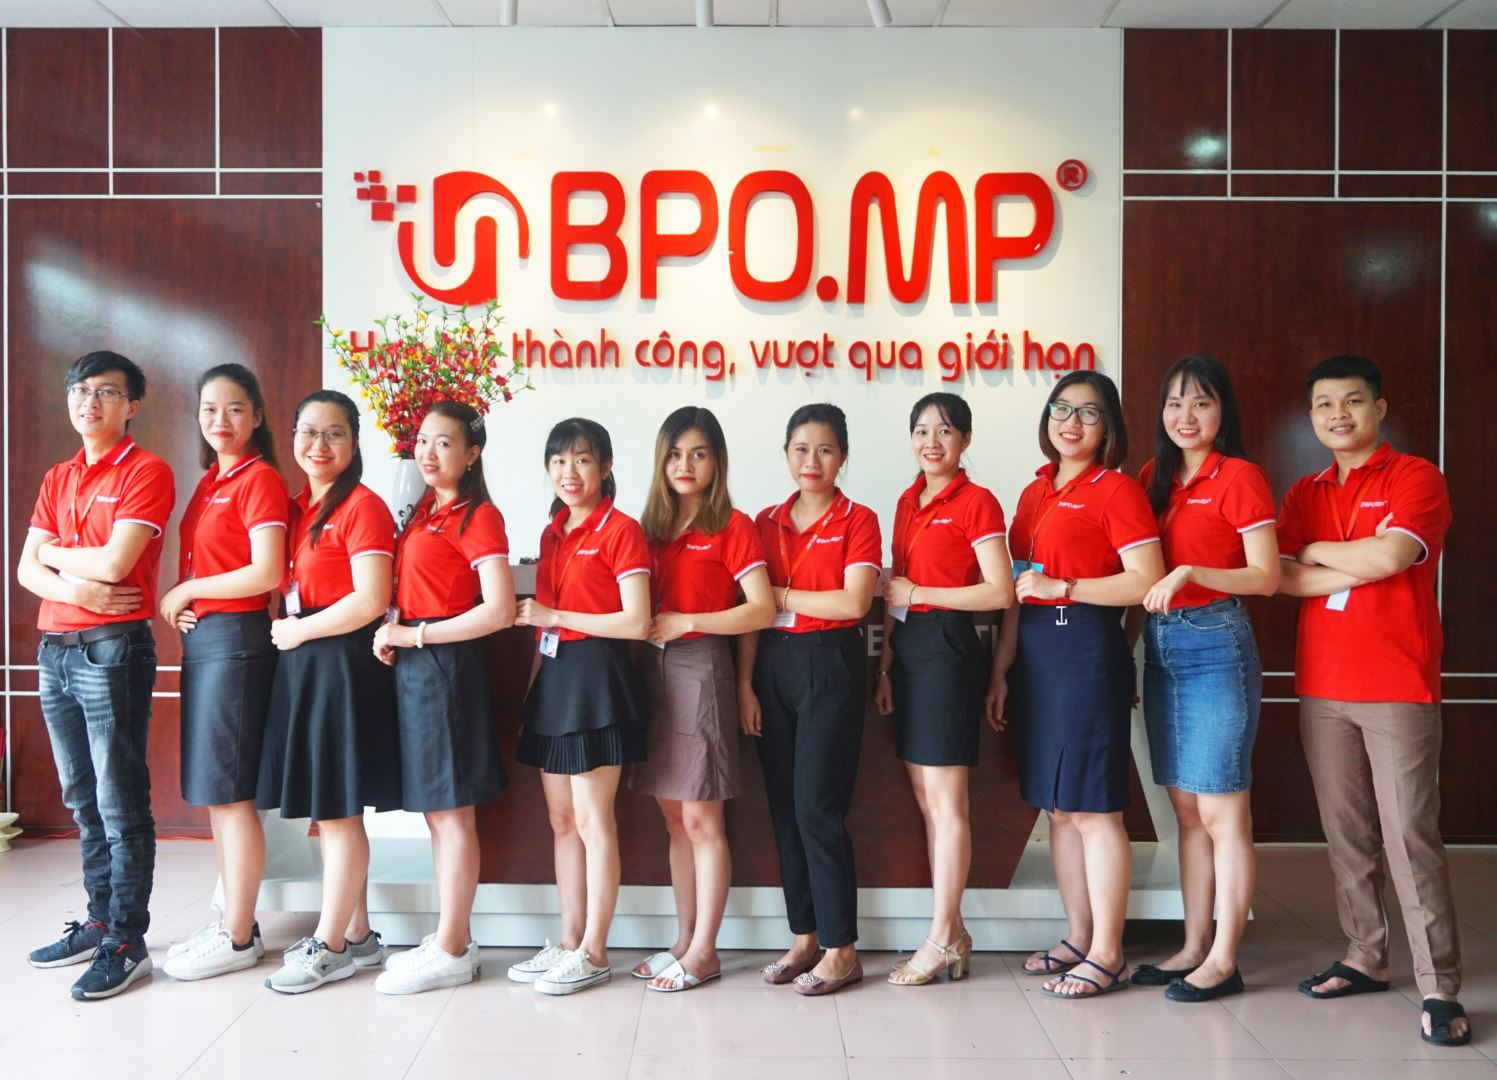 Business Process Outsourcing BPO.MP